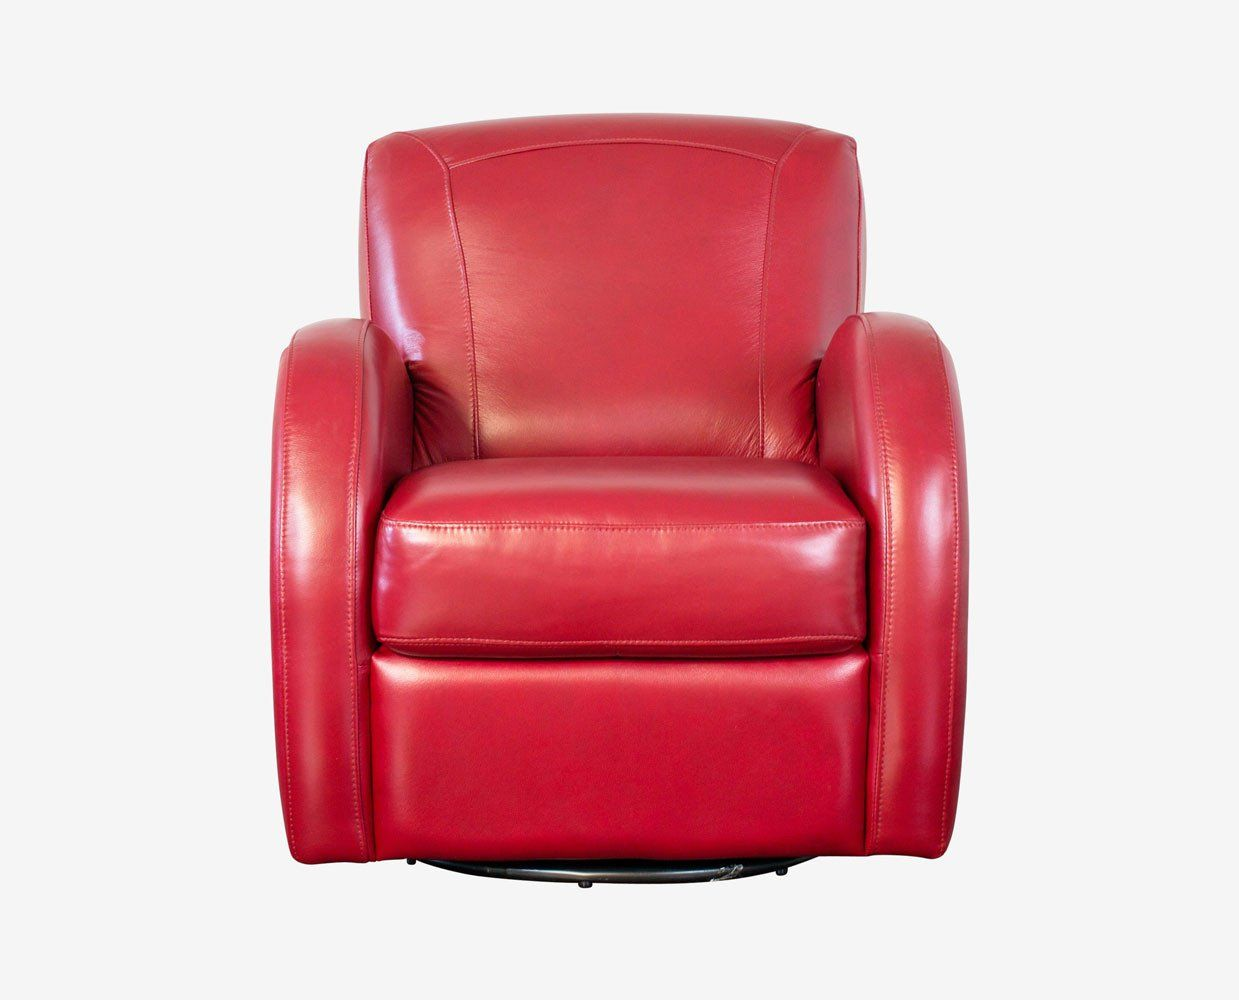 Awe Inspiring Lino Swivel Chair Swivel Chair Red Leather Chair Chair Gmtry Best Dining Table And Chair Ideas Images Gmtryco